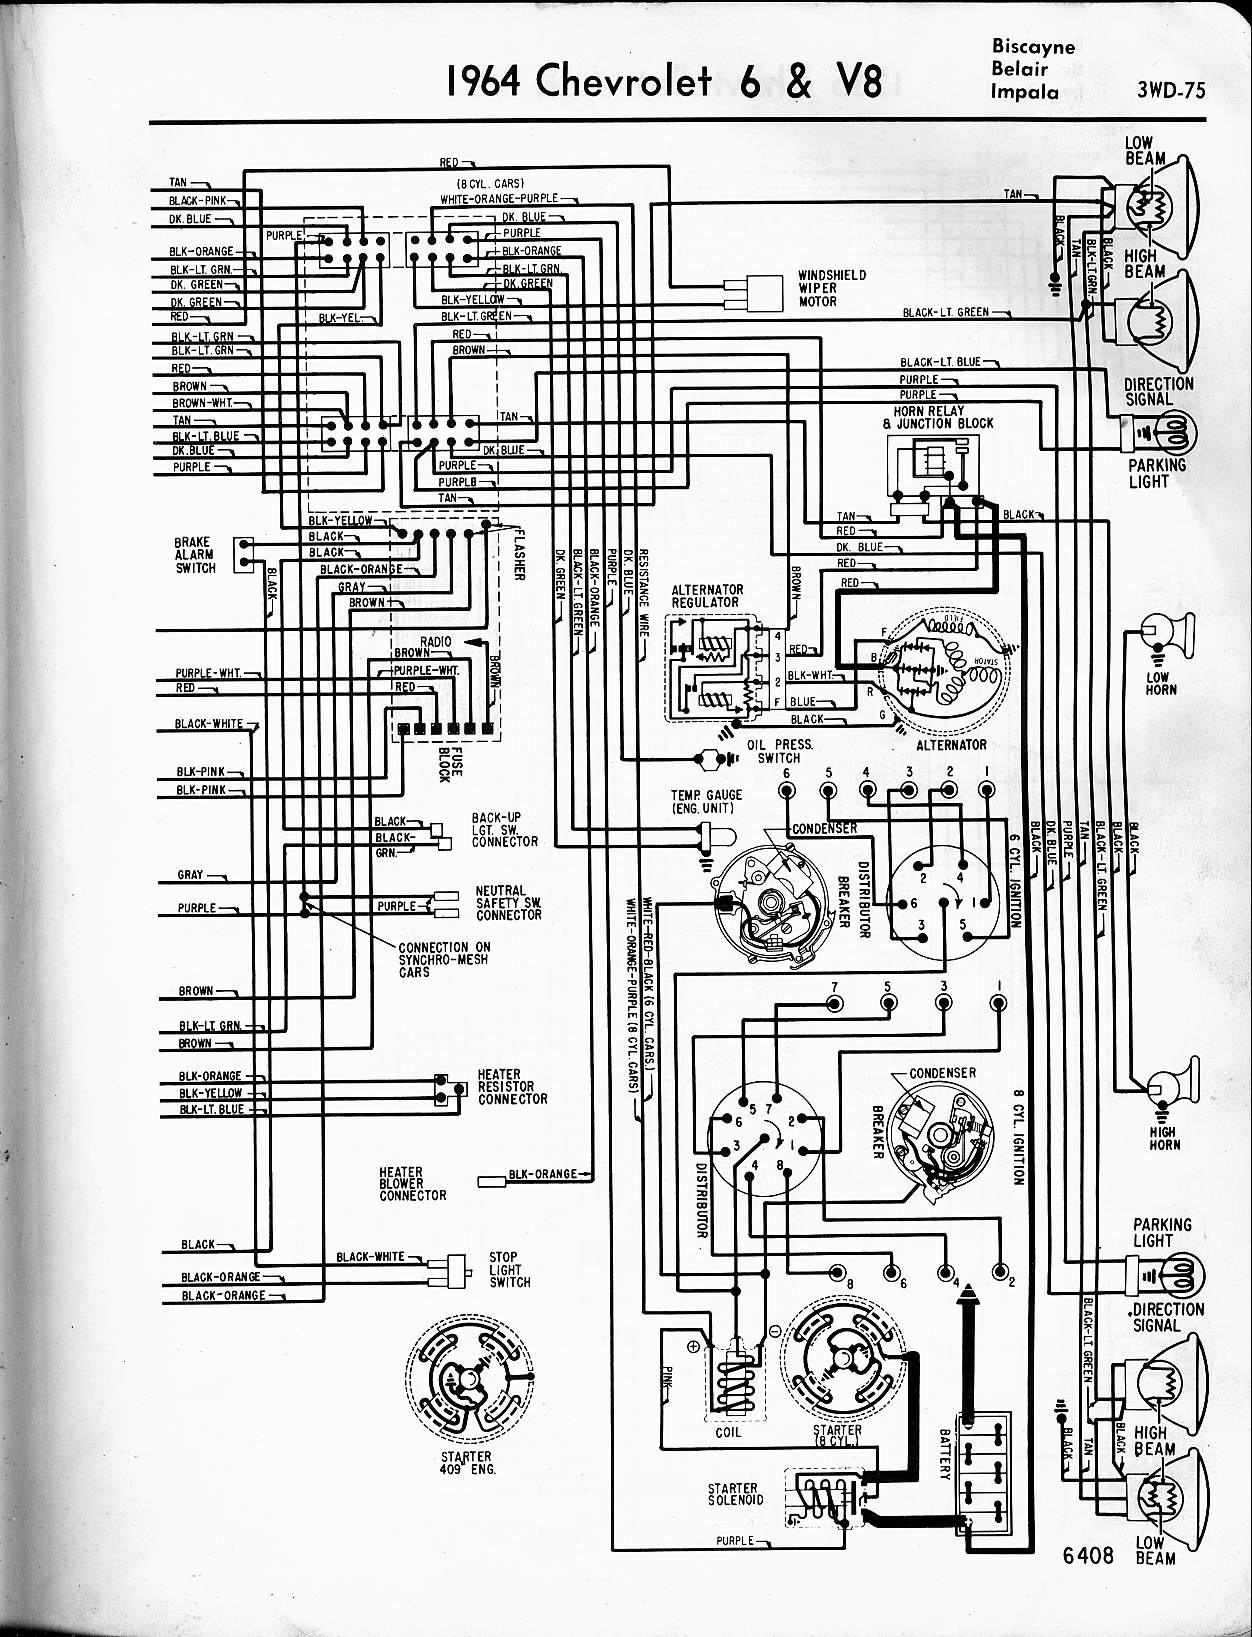 [ZHKZ_3066]  57 - 65 Chevy Wiring Diagrams | Delco Radio Wiring Diagram 1964 |  | The Old Car Manual Project